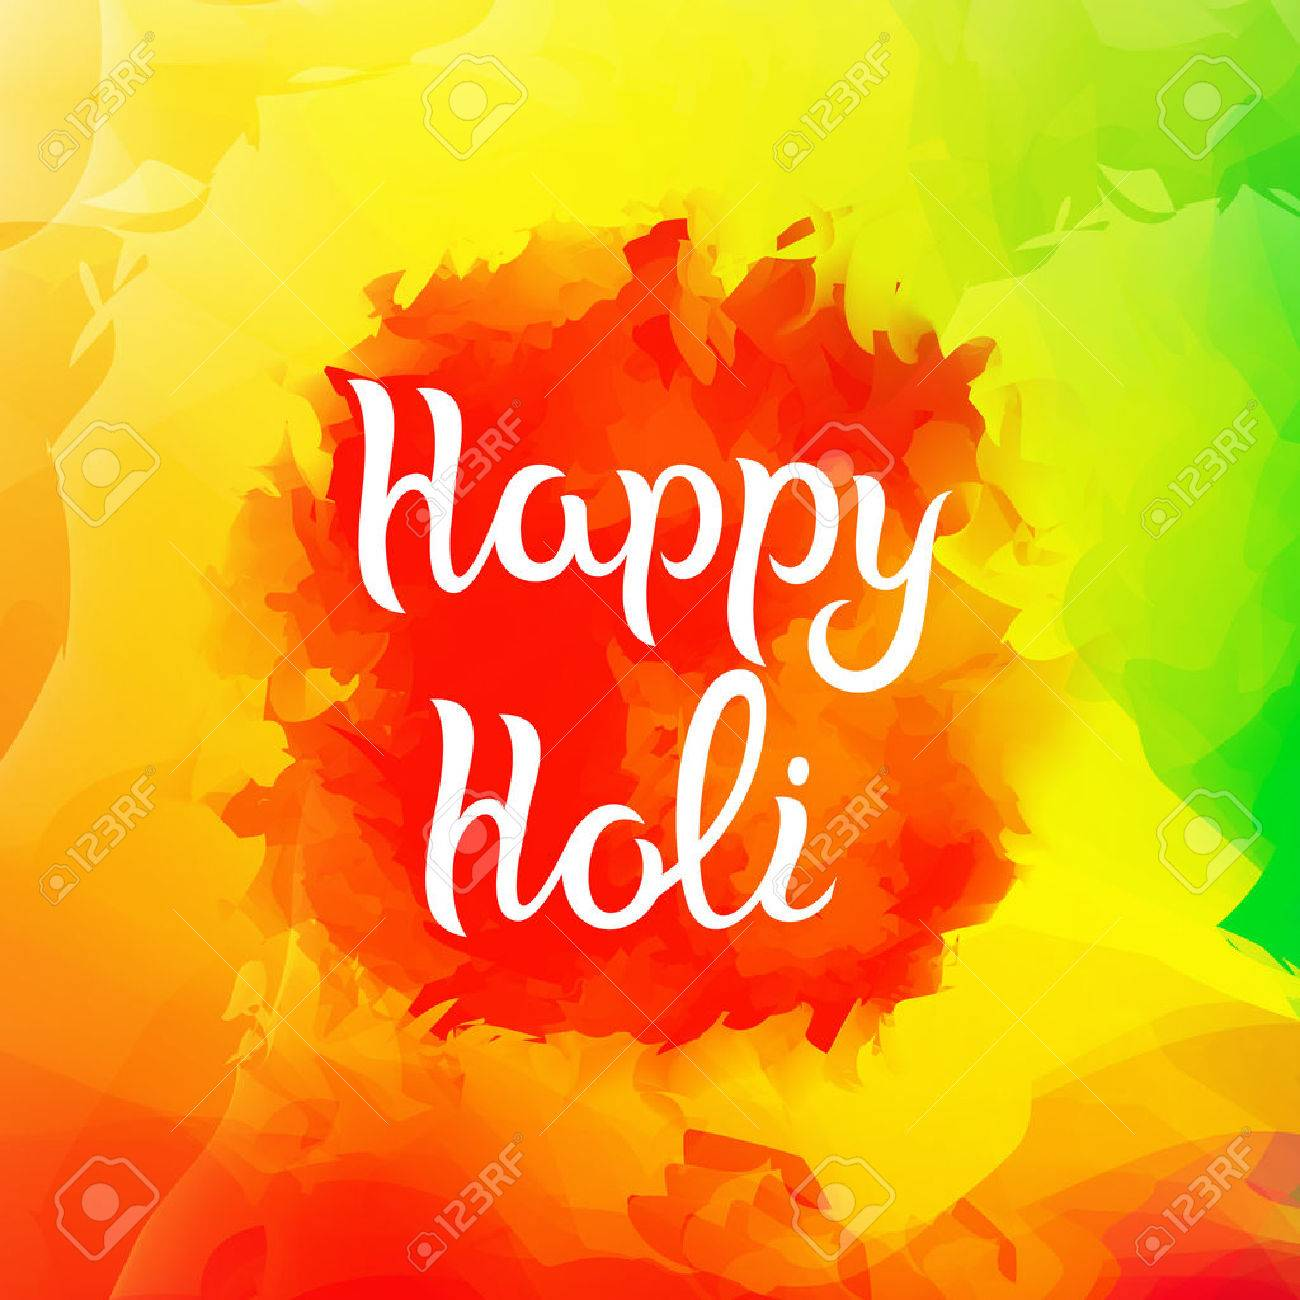 Colorful Background With Paint Splashes Happy Holi With Text